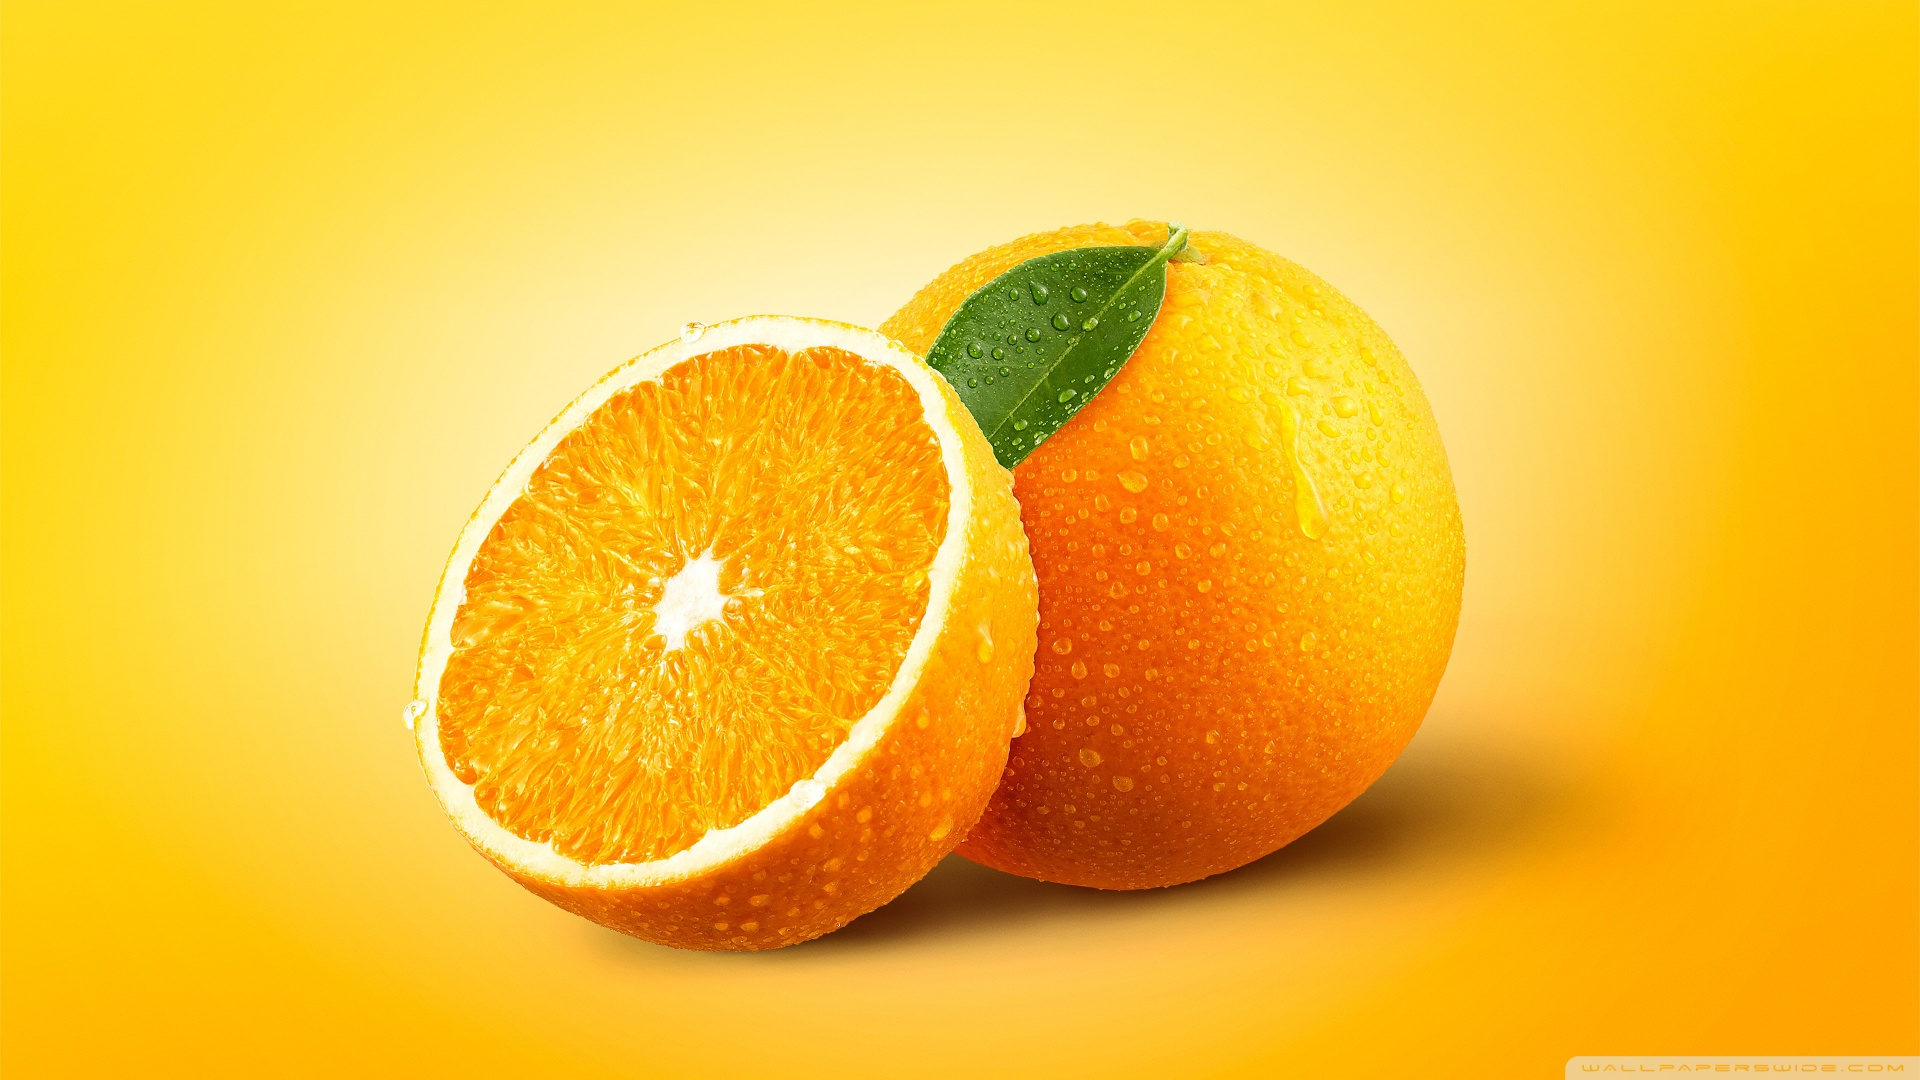 Orange Fruits 4K HD Desktop Wallpaper for 4K Ultra HD TV Dual 1920x1080